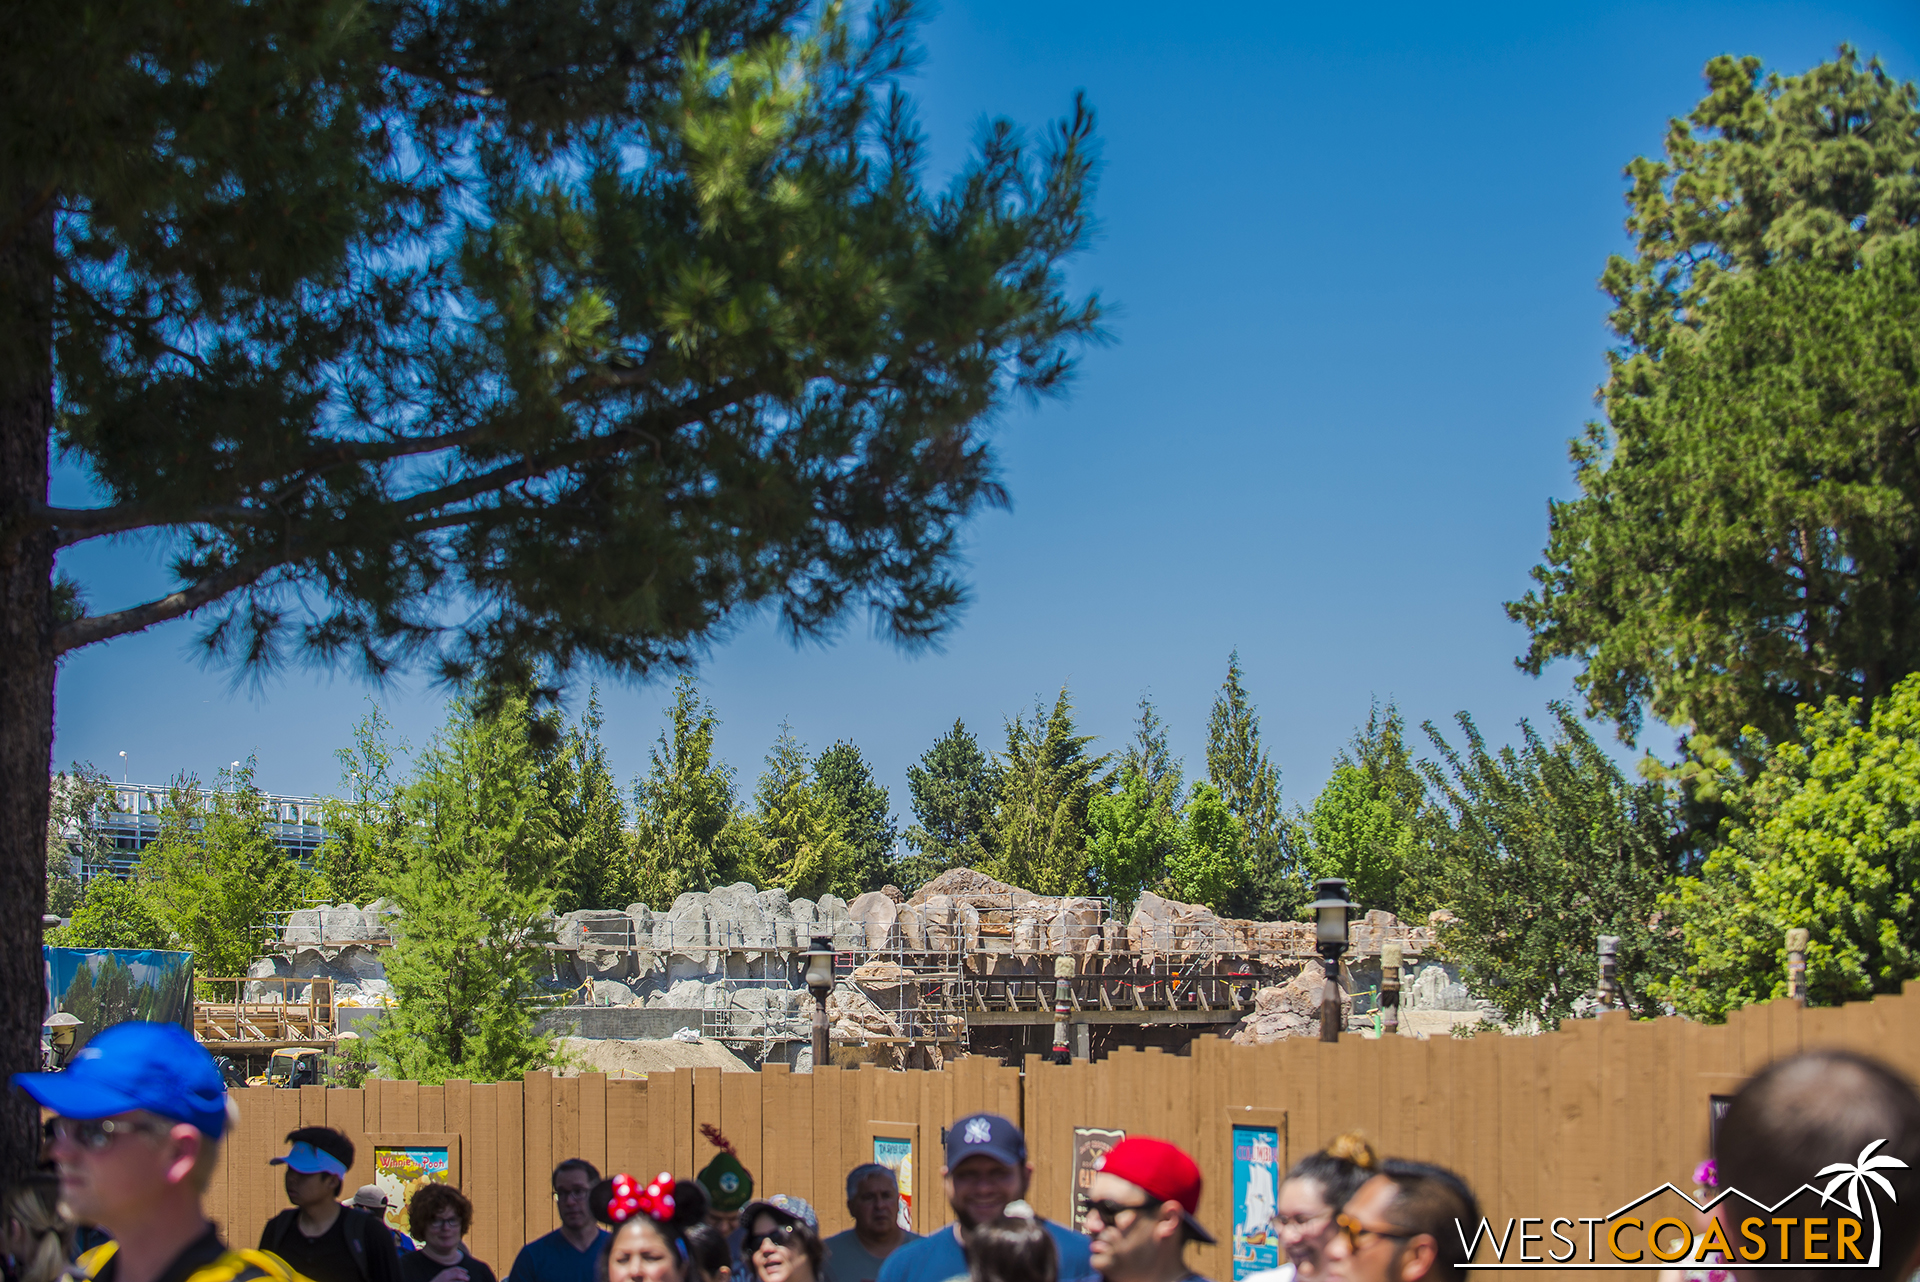 Over by Splash Mountain, we can see the rockwork continue along the Rivers.